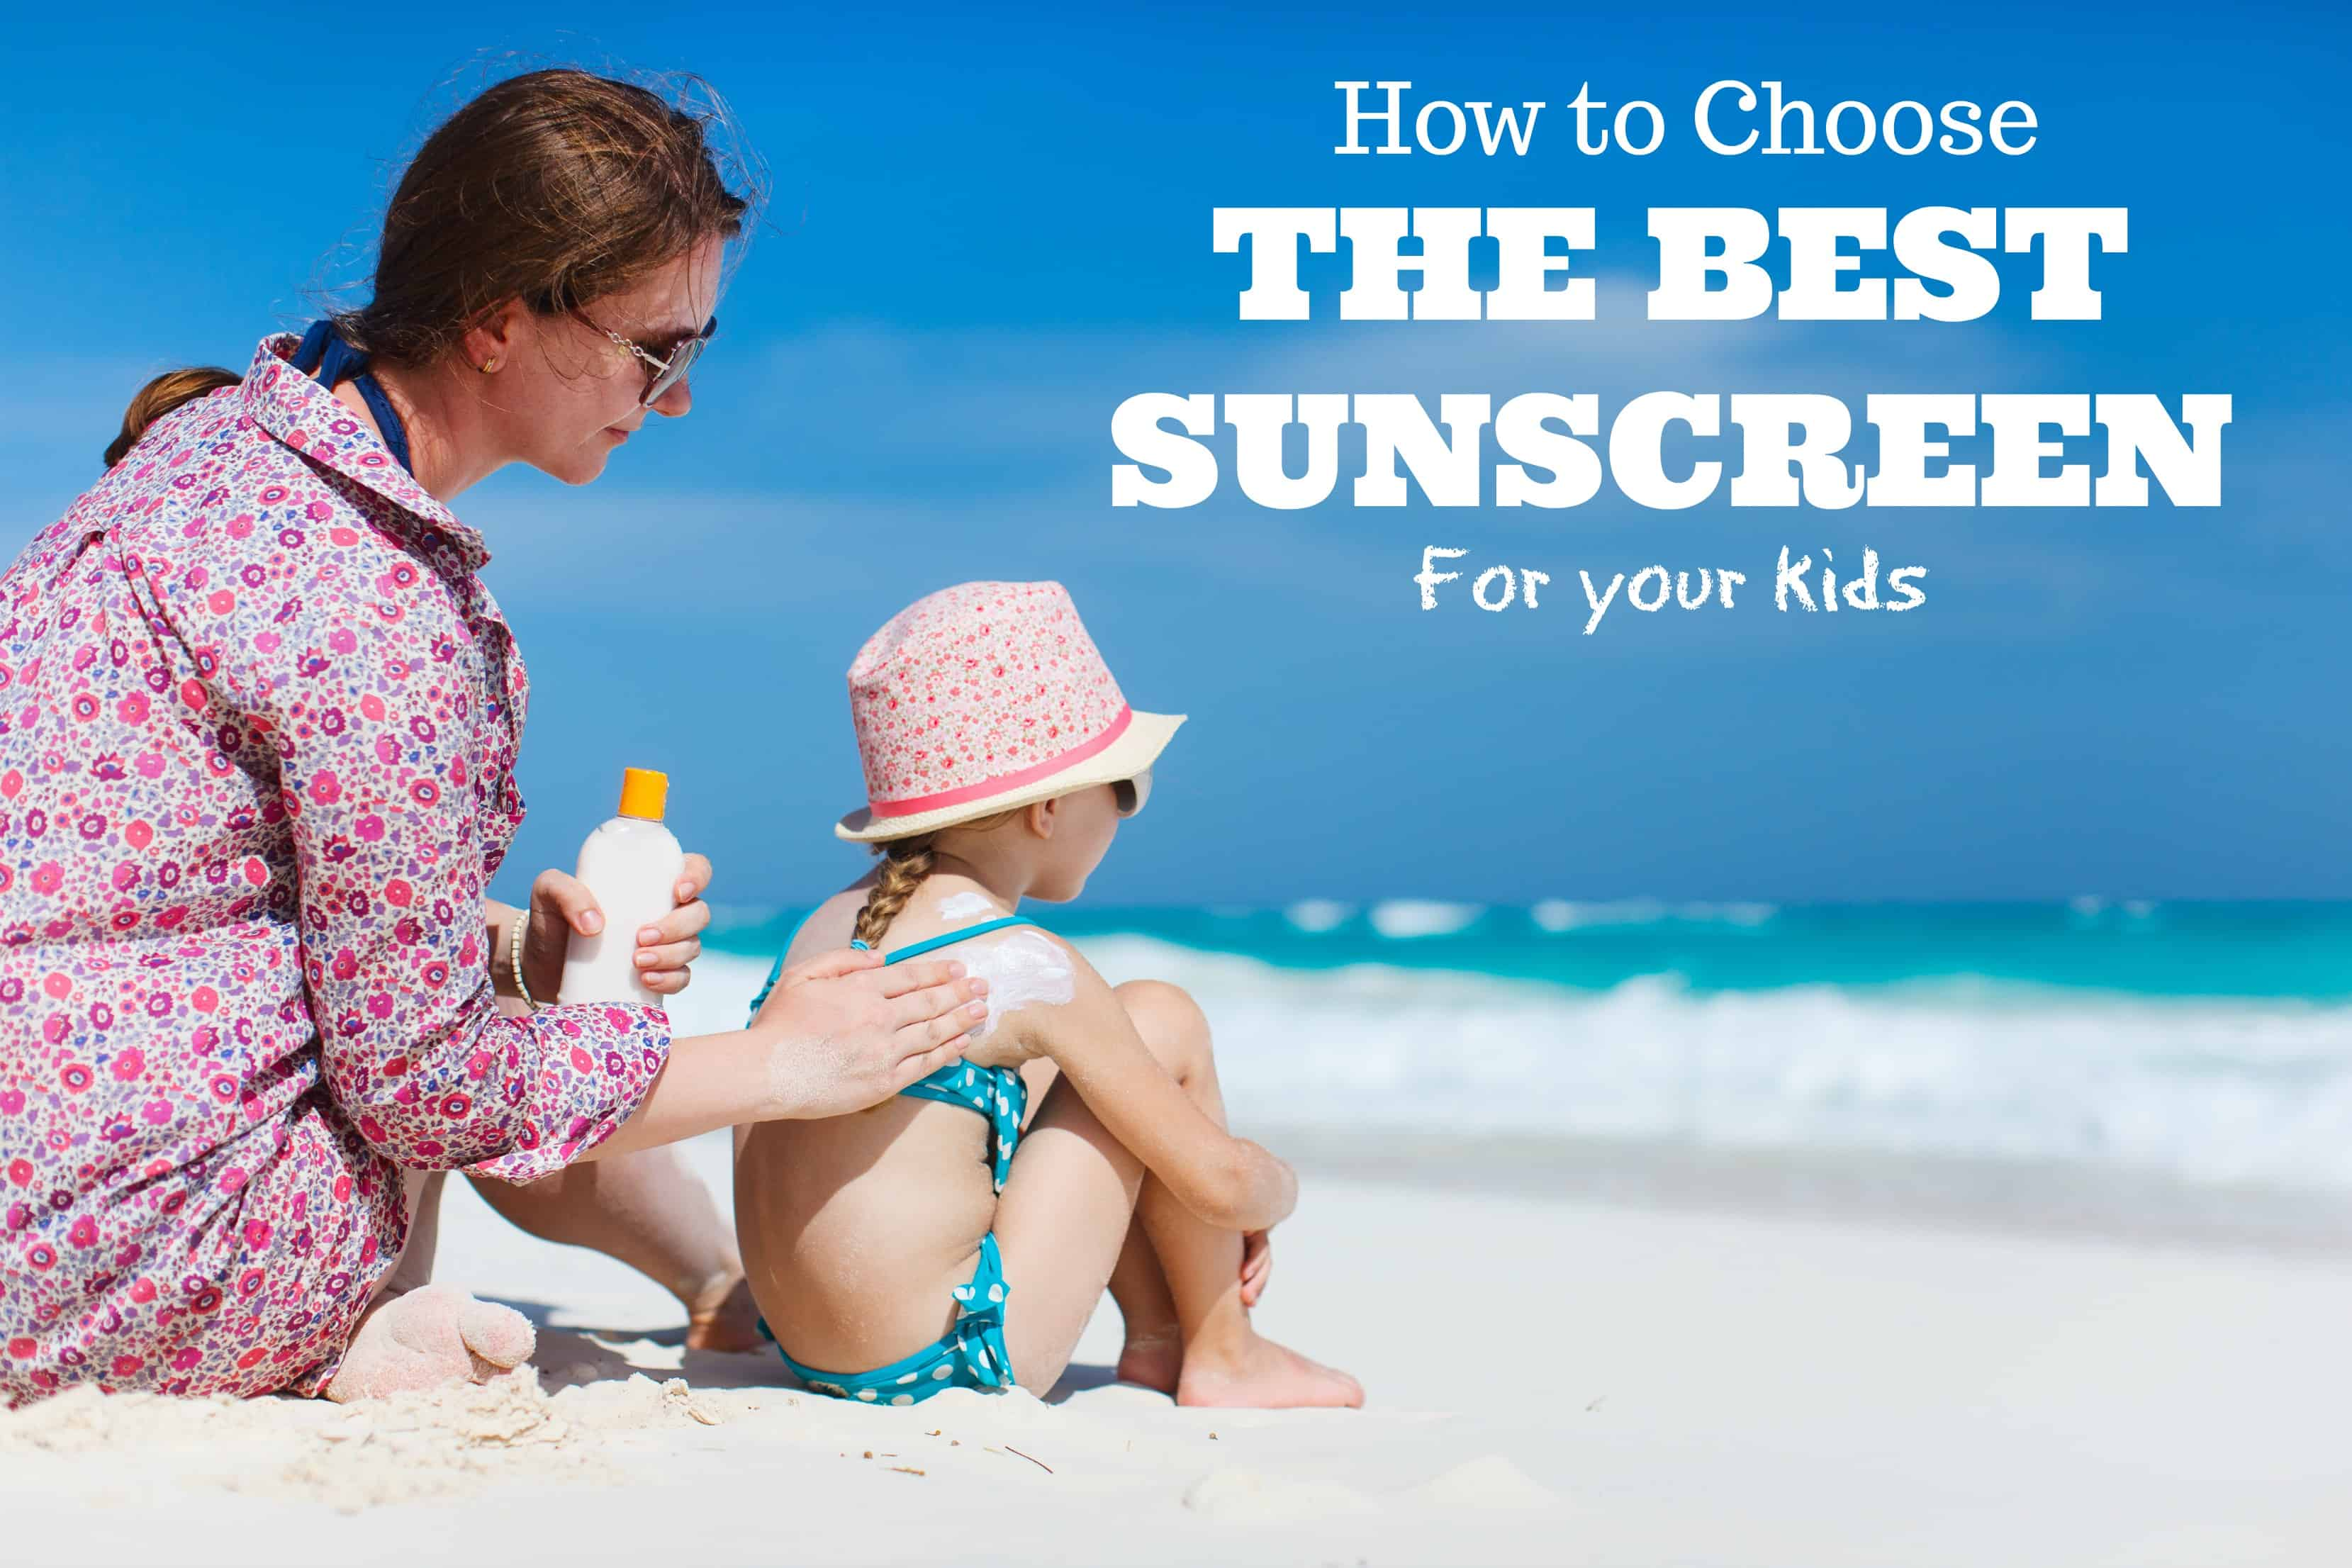 How To Choose The Best Sunscreen For Your Kids